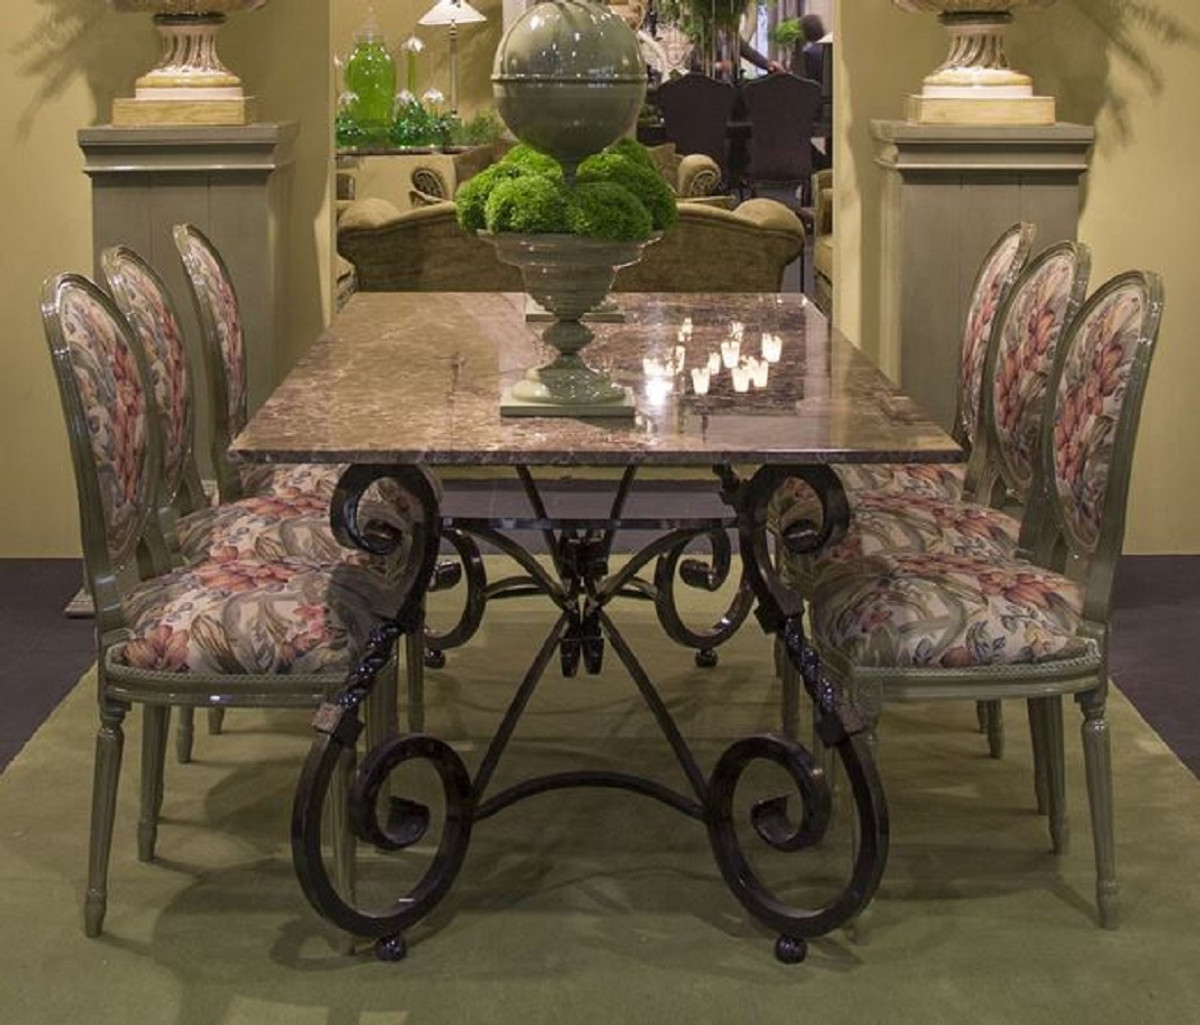 casa padrino luxury baroque dining table base black hand forged wrought iron frame dining room garden patio furniture